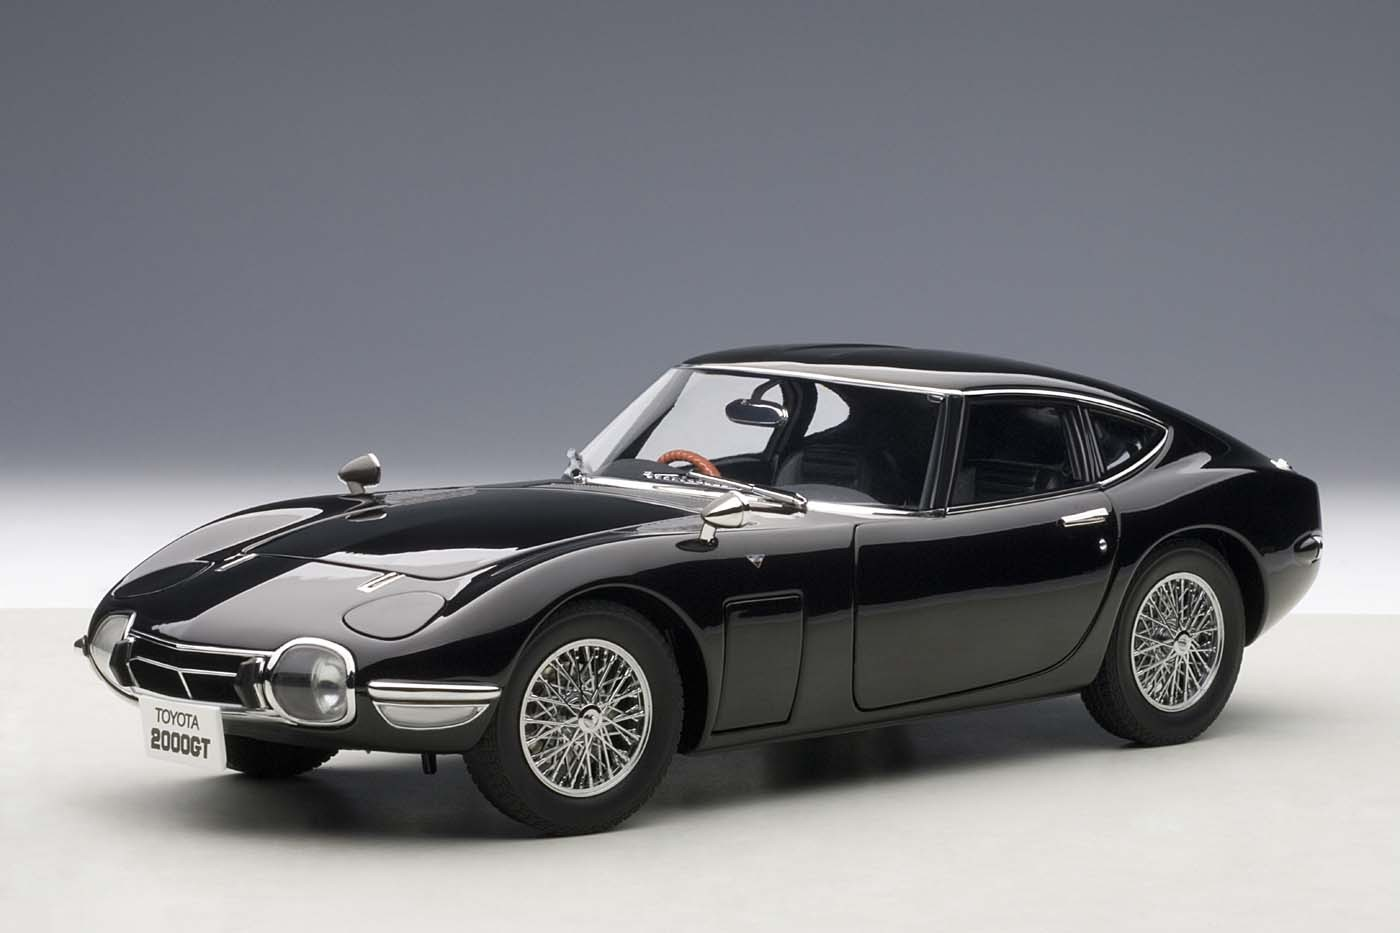 AUTOart die-cast model Toyota 2000 GT Upgraded Coupe Black ...